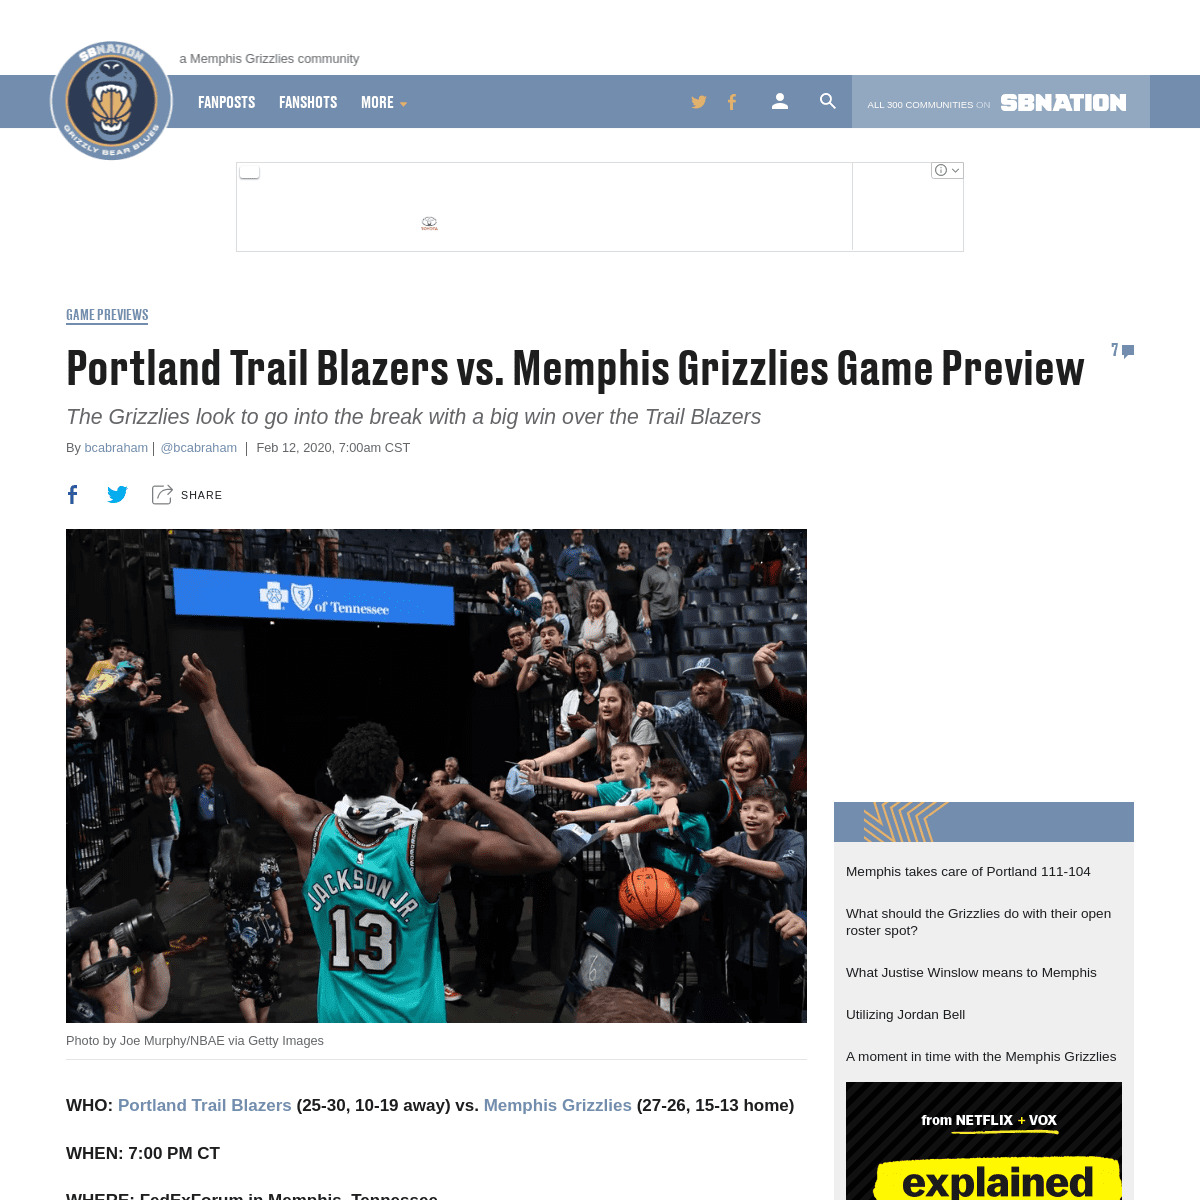 ArchiveBay.com - www.grizzlybearblues.com/2020/2/12/21131573/portland-trail-blazers-vs-memphis-grizzlies-game-preview-nba-information-tv-start-time - Portland Trail Blazers vs. Memphis Grizzlies Game Preview - Grizzly Bear Blues